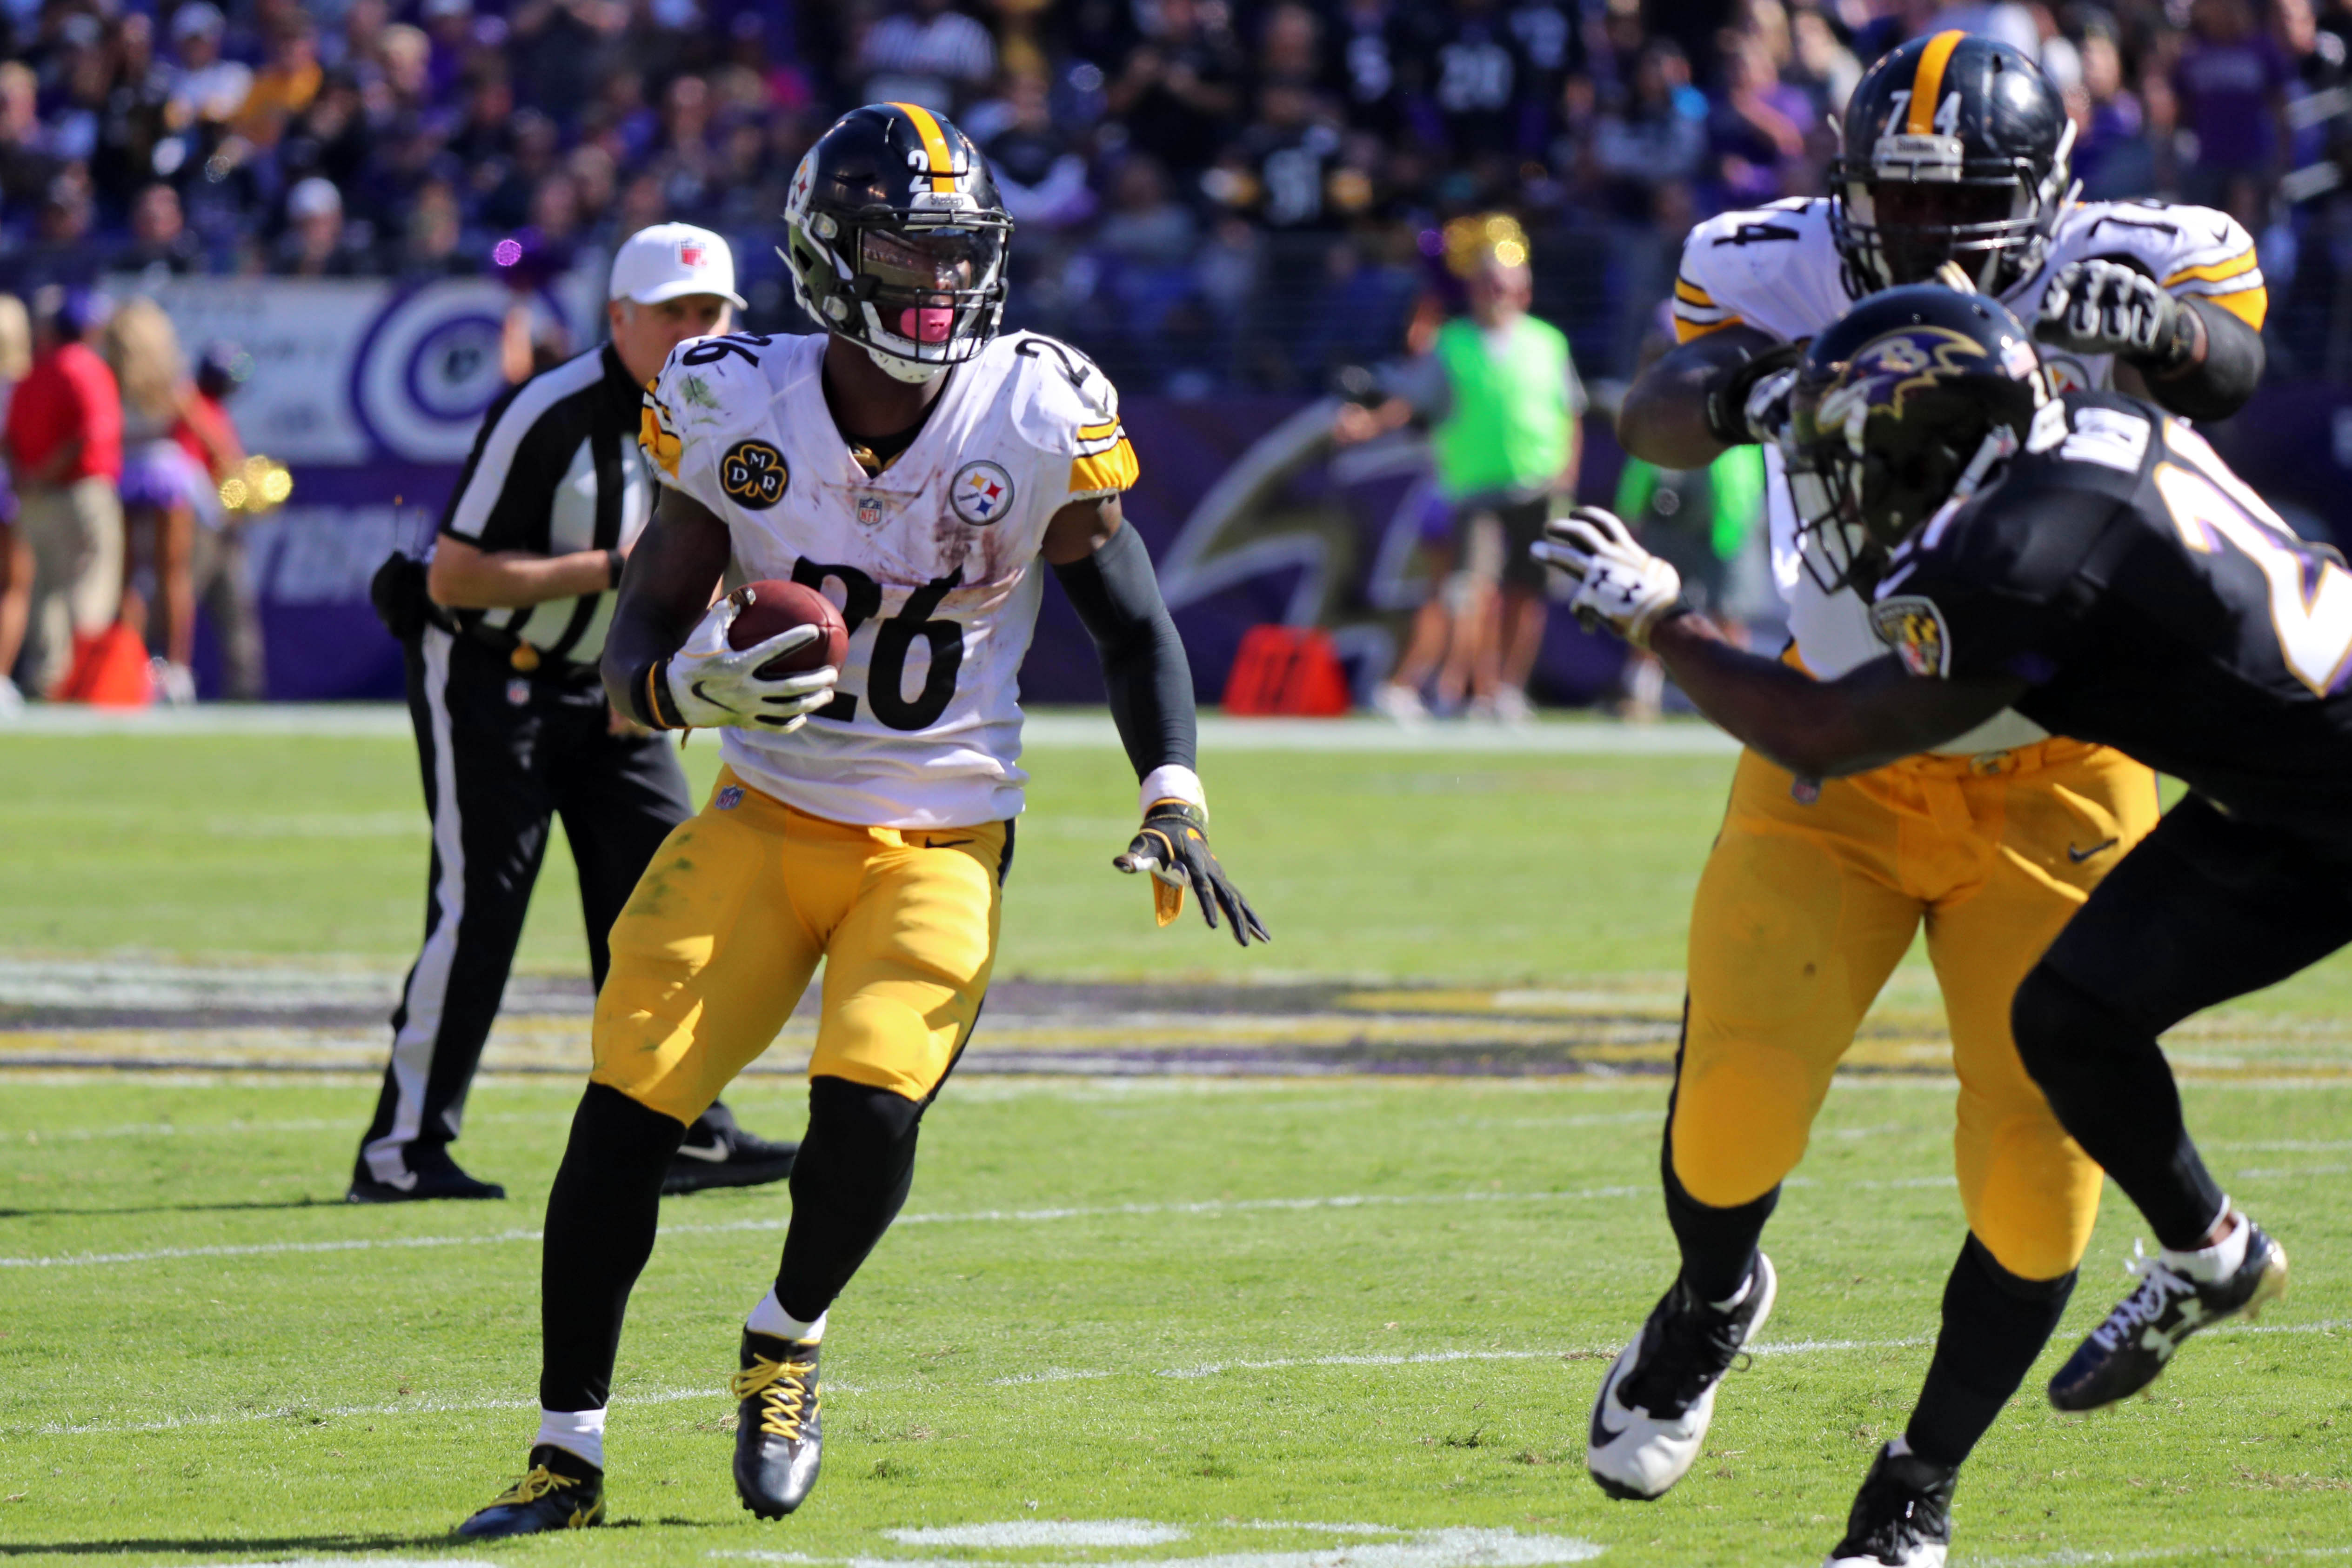 Who's going to make a move for Le'Veon Bell?